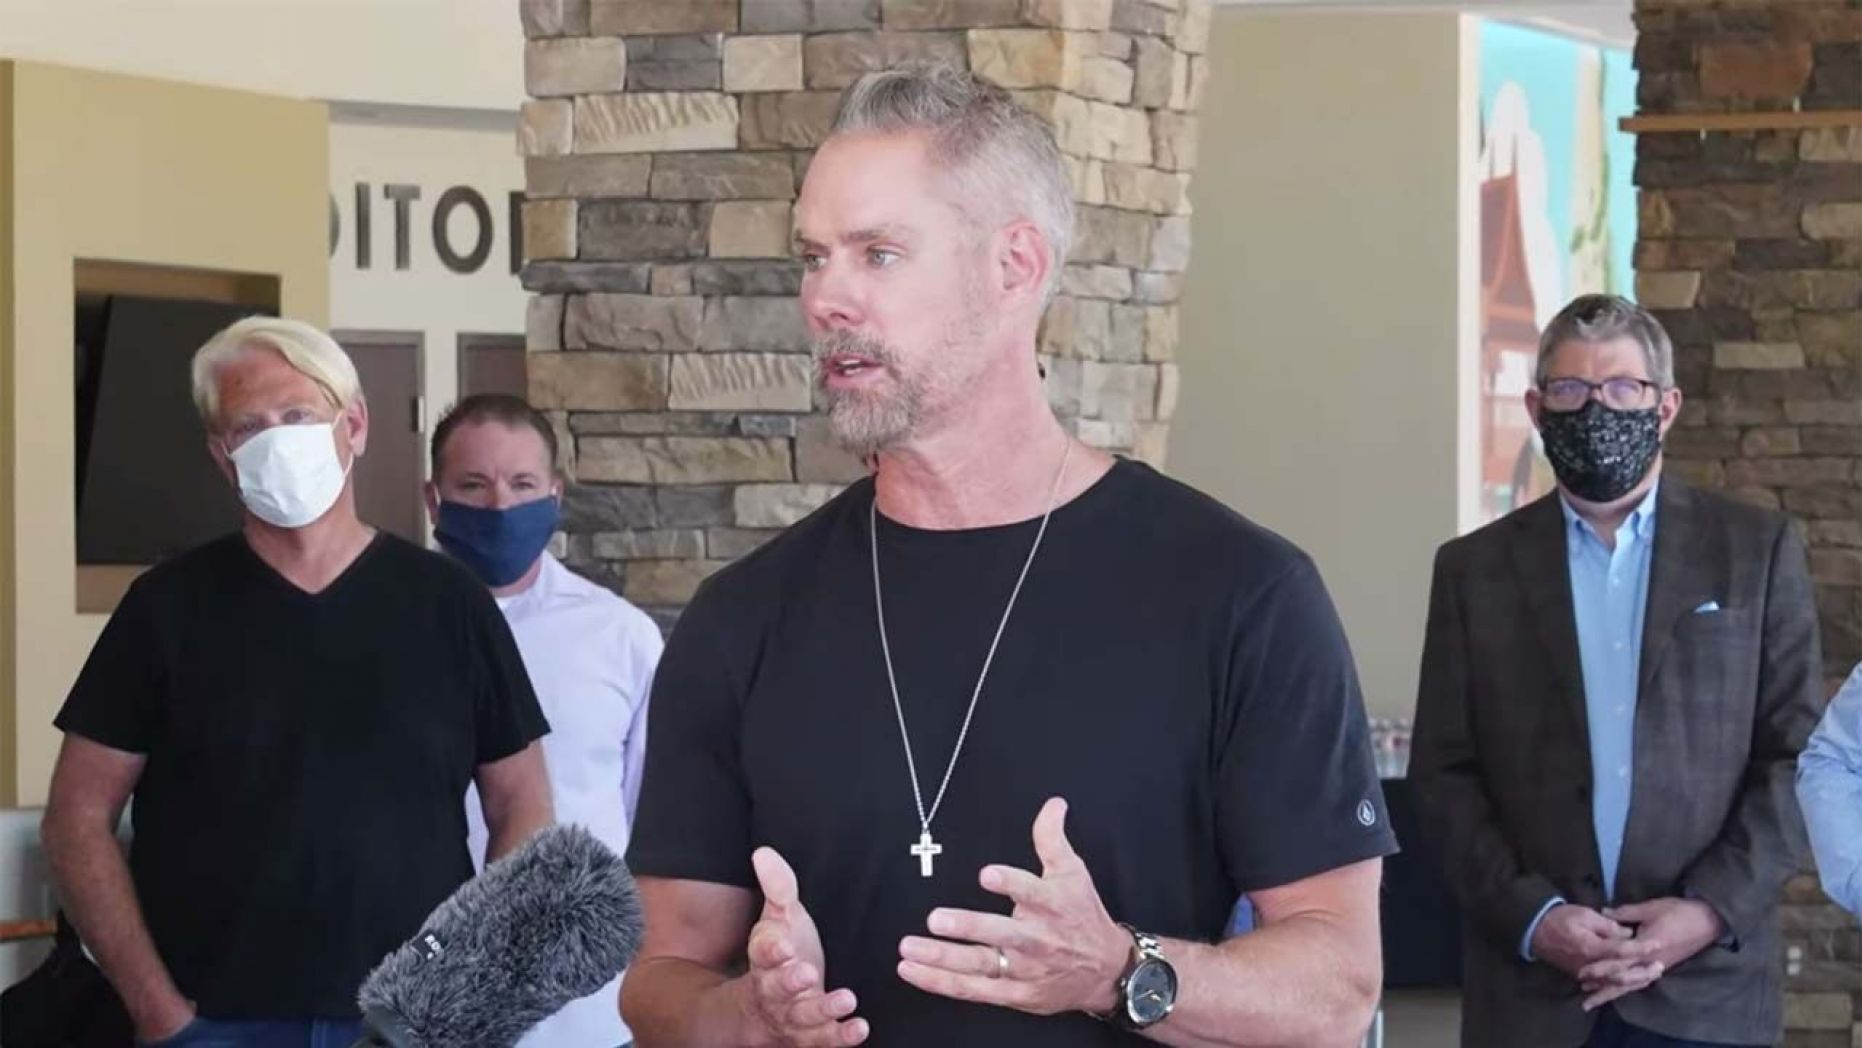 Matt Brown, pastor of Sandals Church in Riverside, blasted Newsom for deeming churches nonessential during the pandemic.